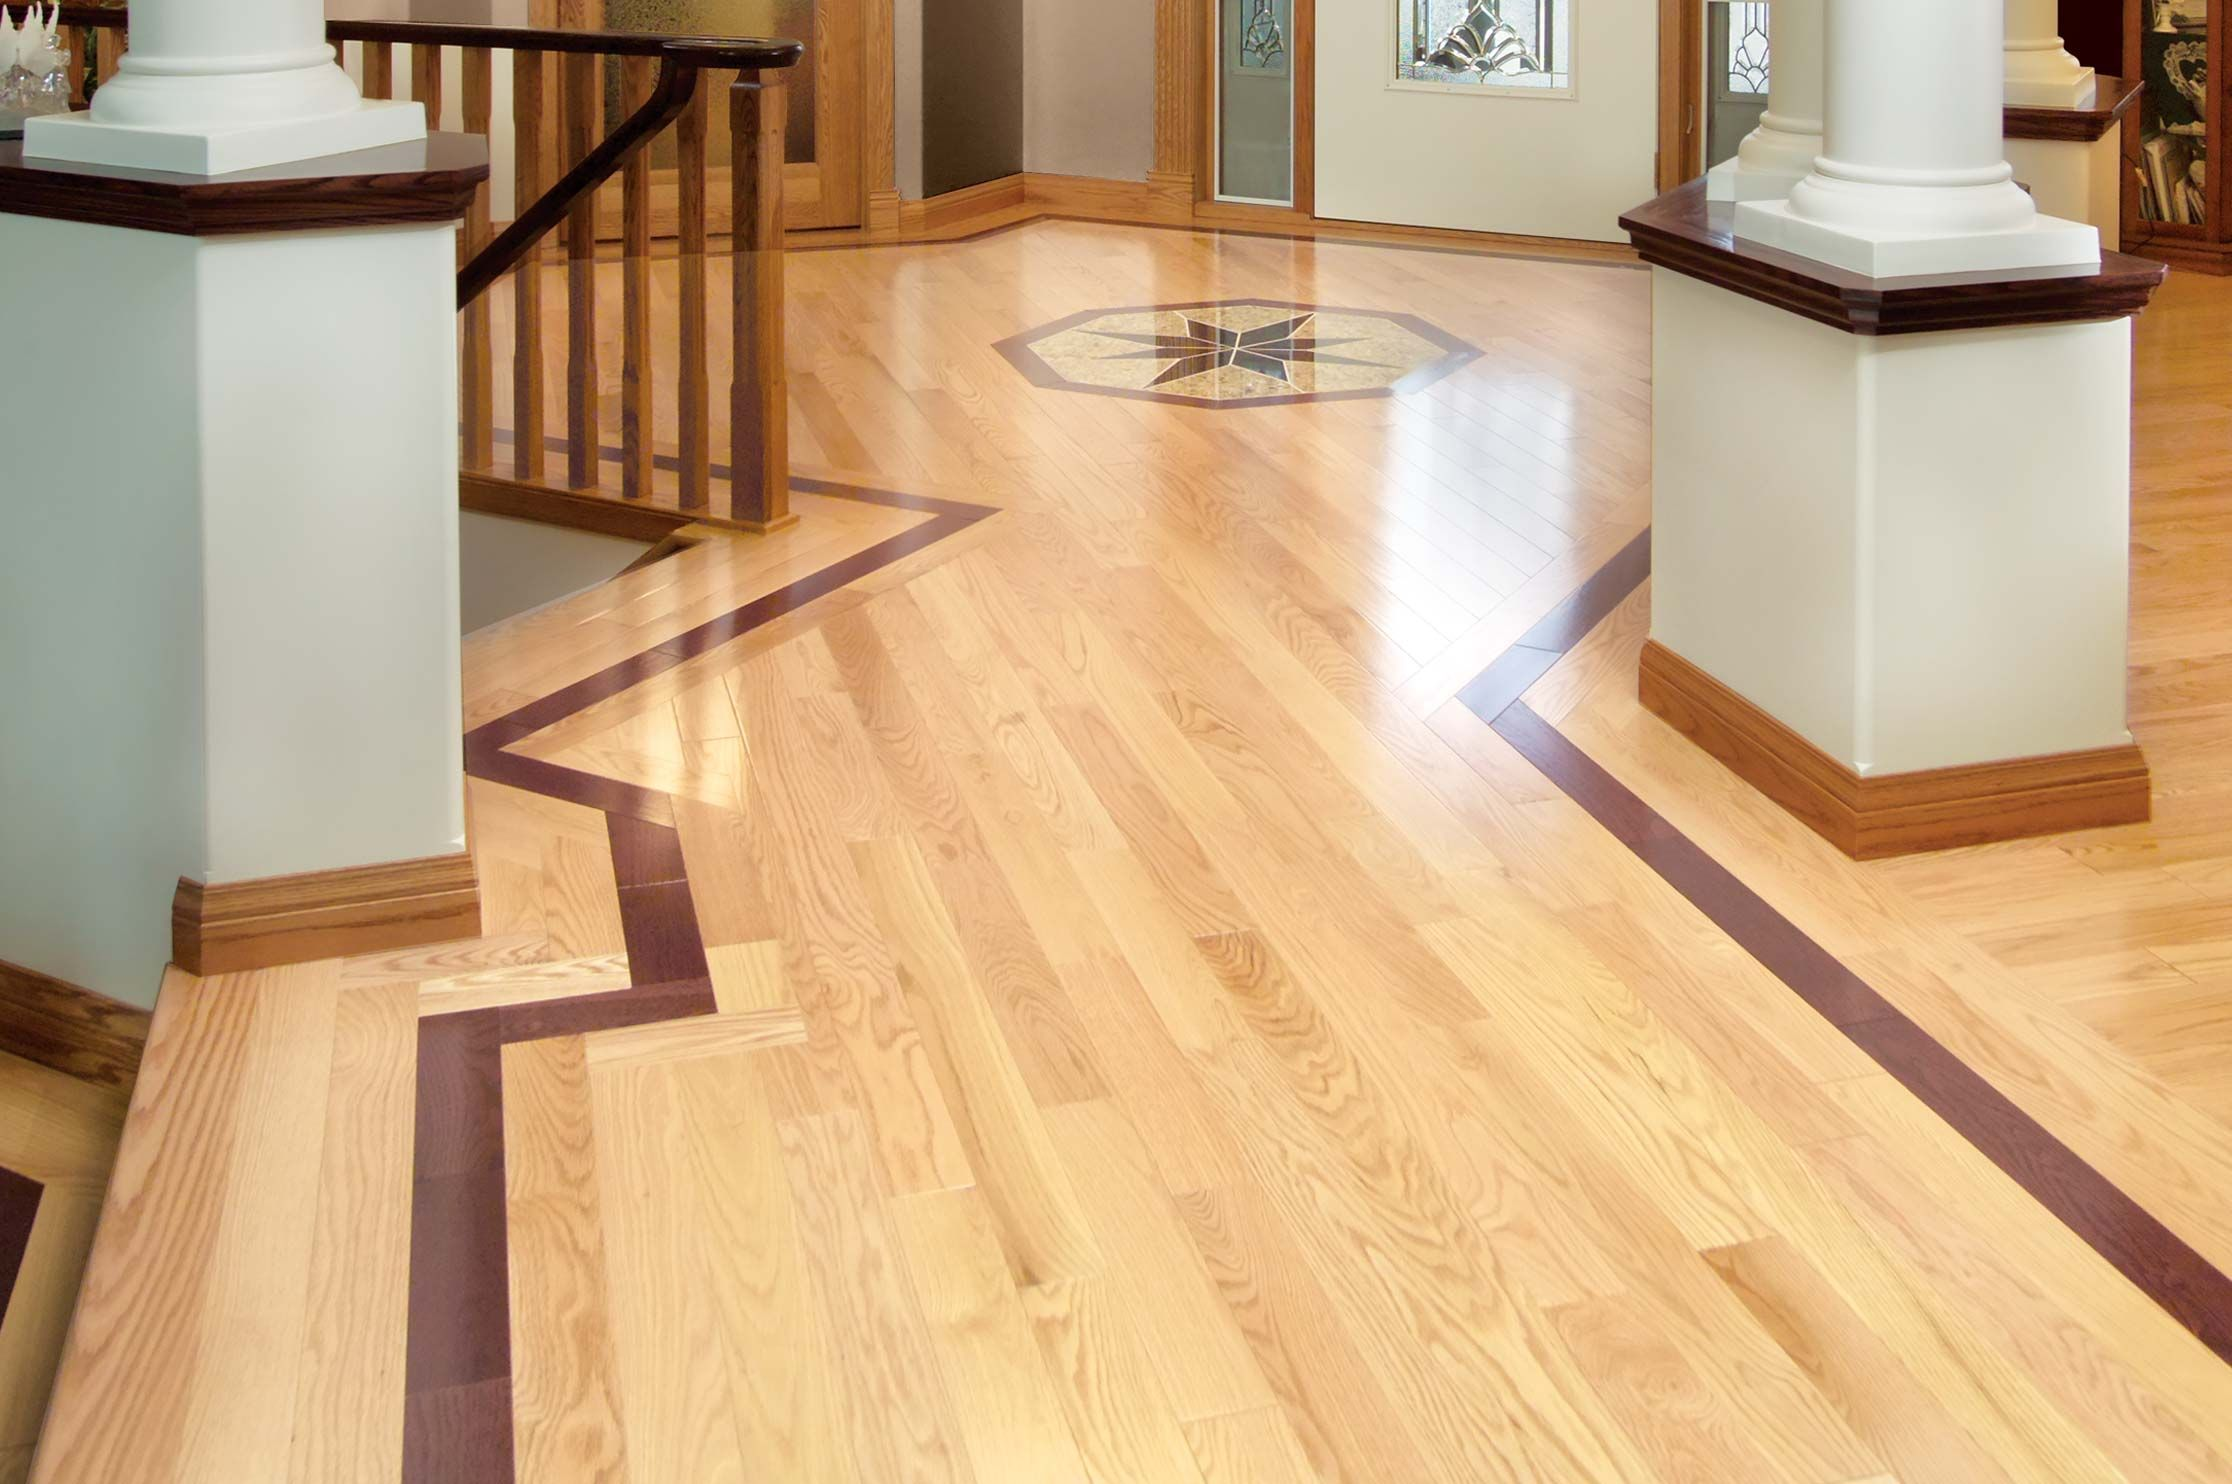 Red oak select better mirage hardwood floors for Mirage hardwood flooring